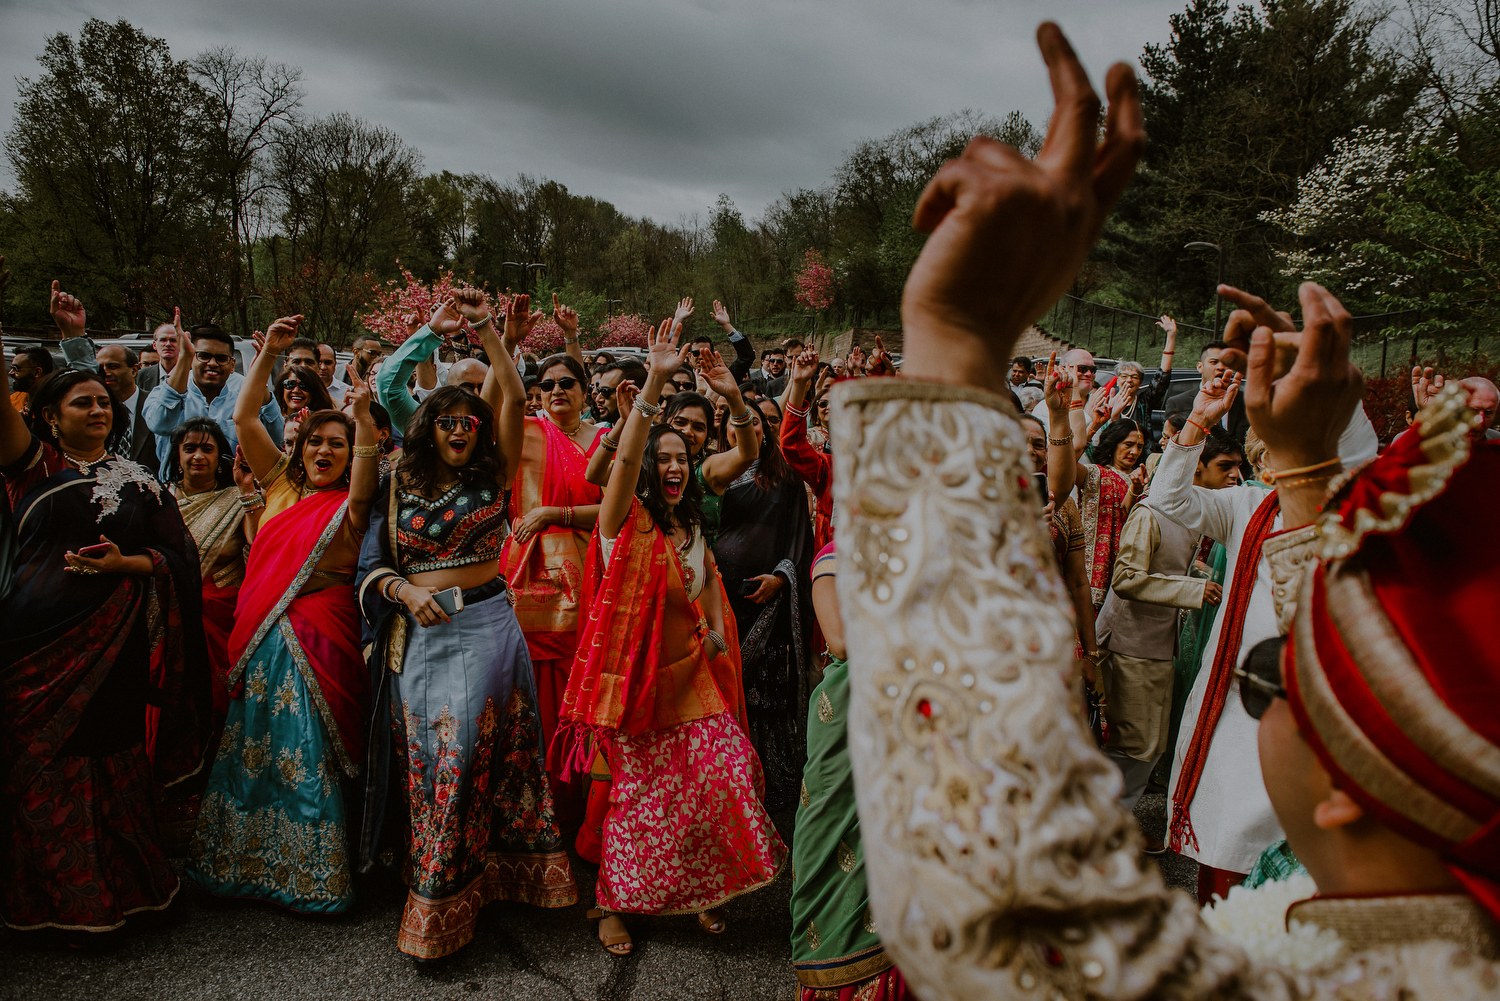 joyful and colorful baraat celebration before indian ceremony